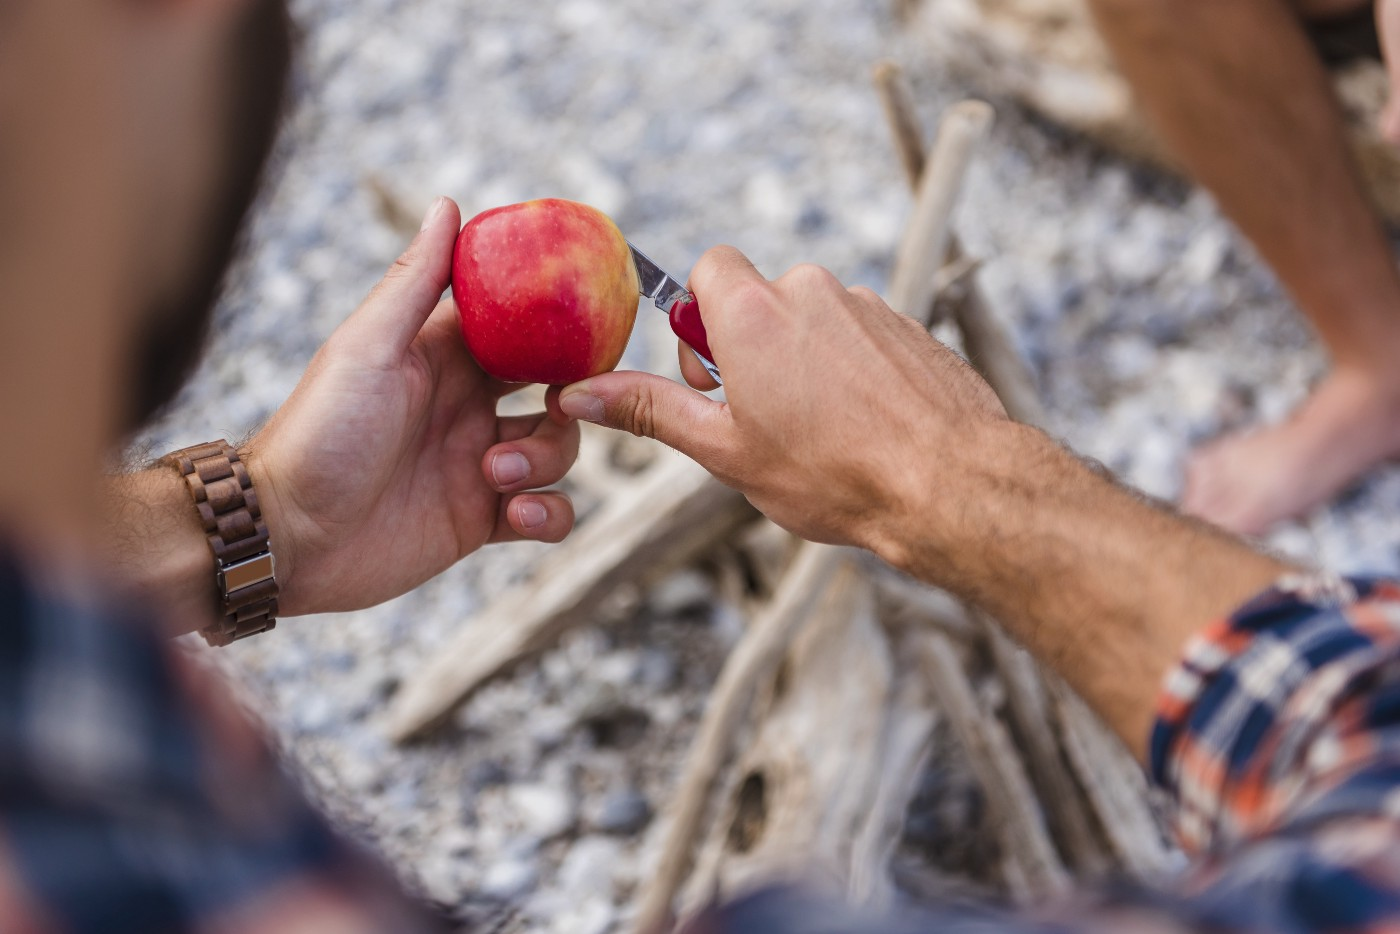 Person using pocket knife to peel apple skin.